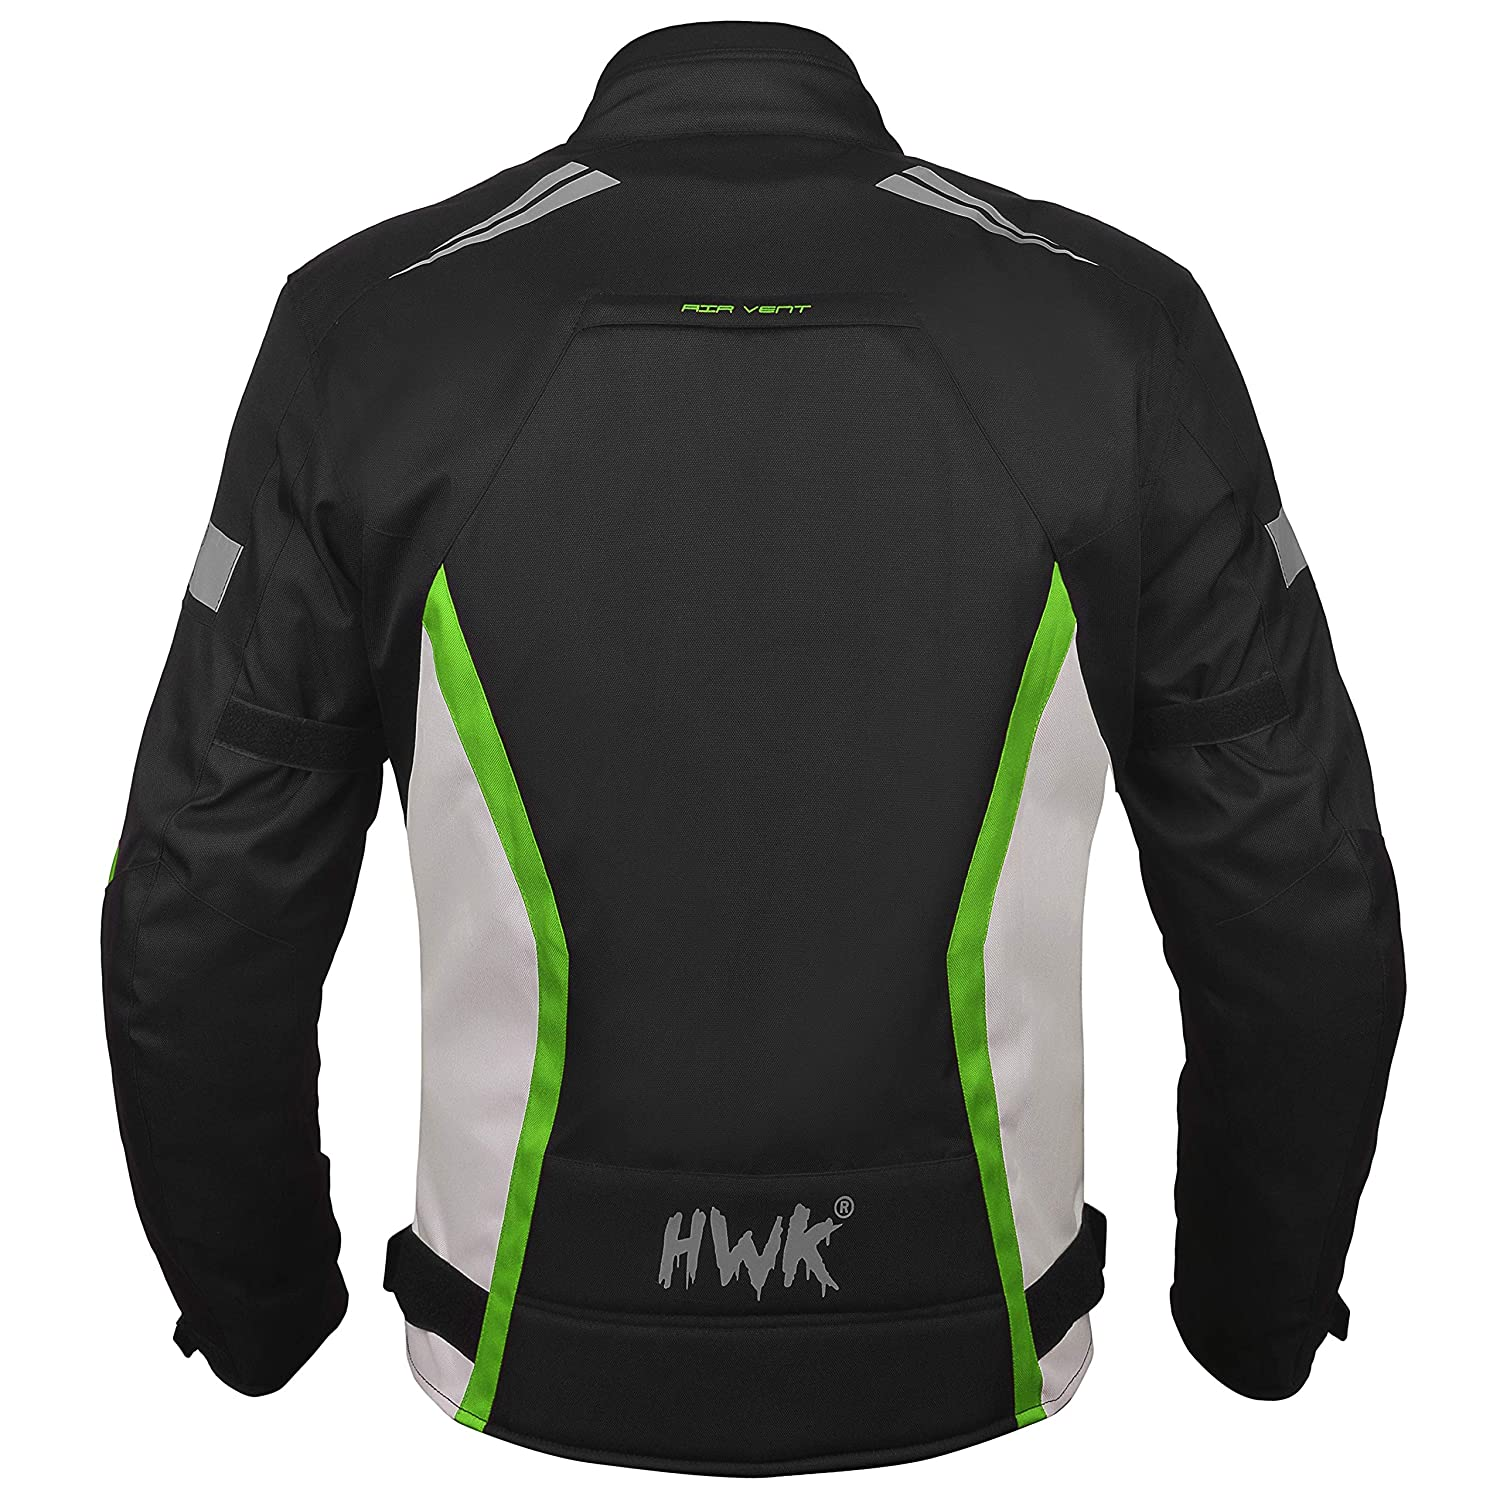 HWK Motorcycle Jacket for Men Cordura Motorbike Racing Biker Riding Breathable CE Armored Waterproof All-Weather Blue, XXX-Large